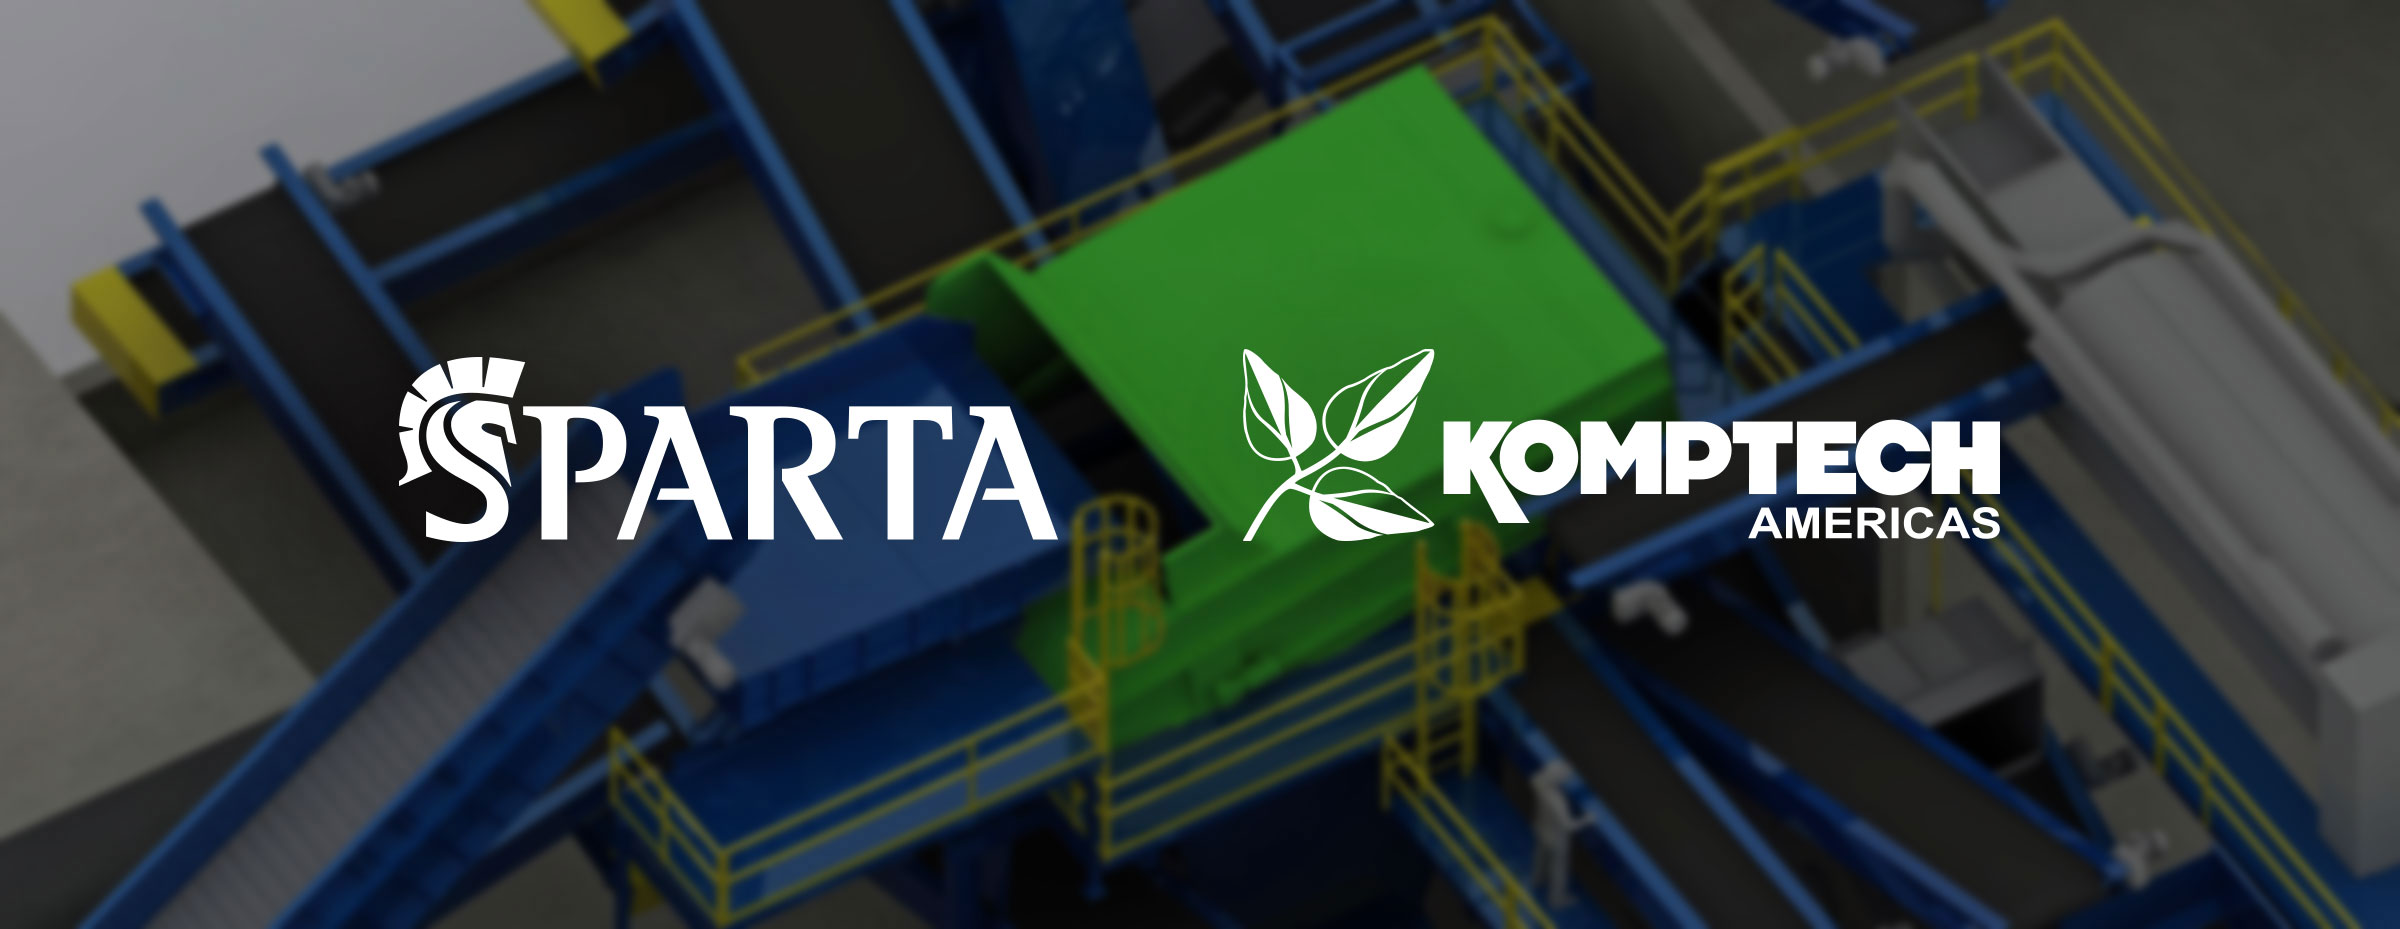 Komptech Americas and Sparta C&D System